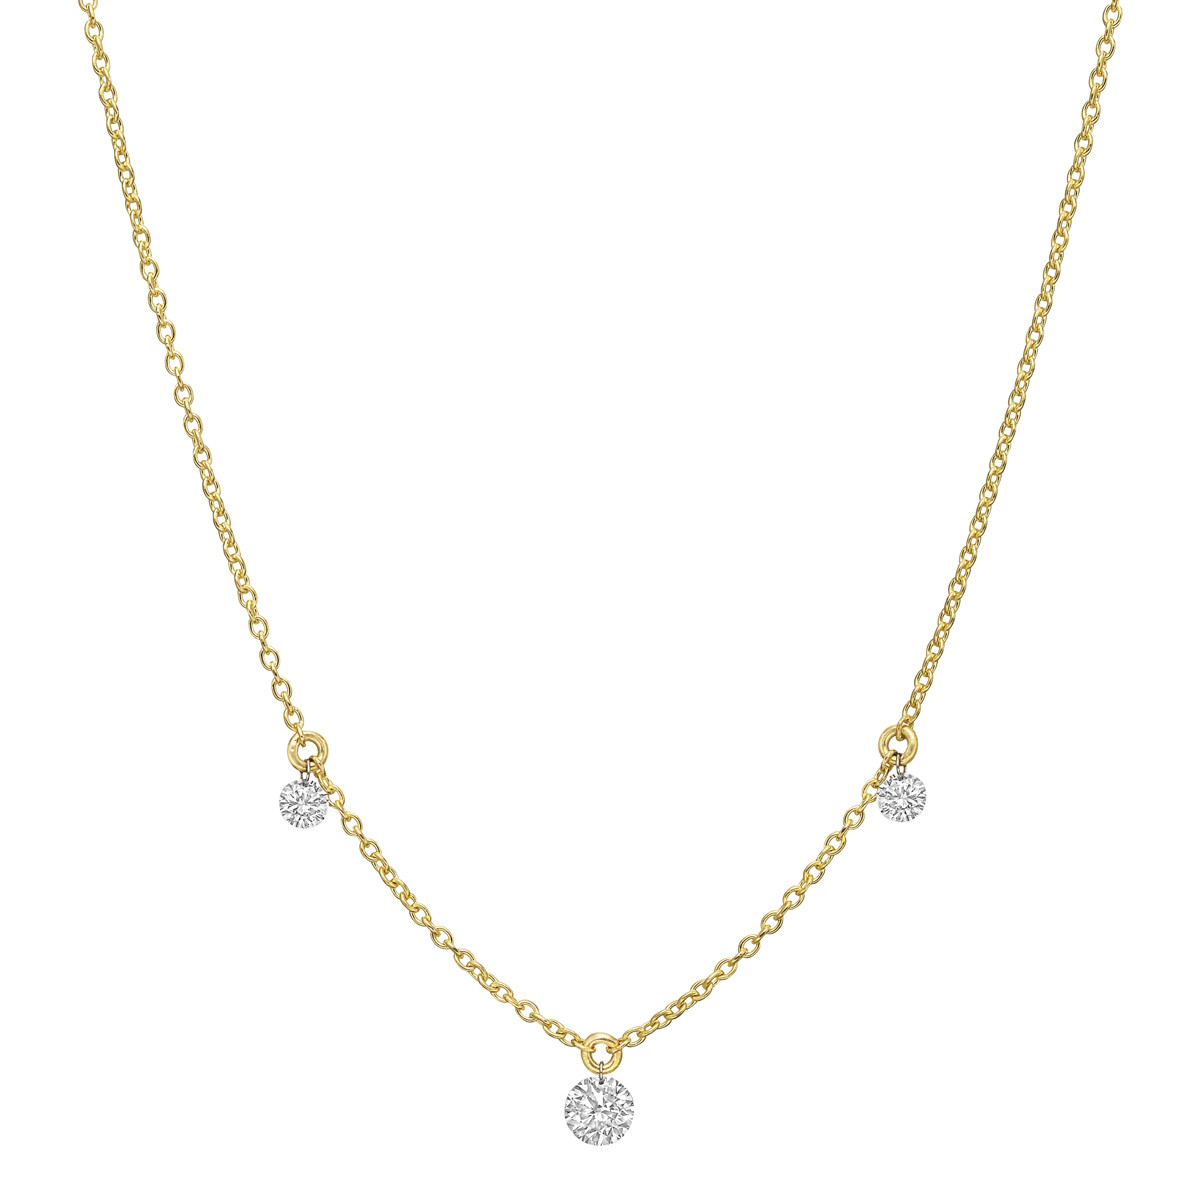 Three Diamond Fringe Chain Necklace